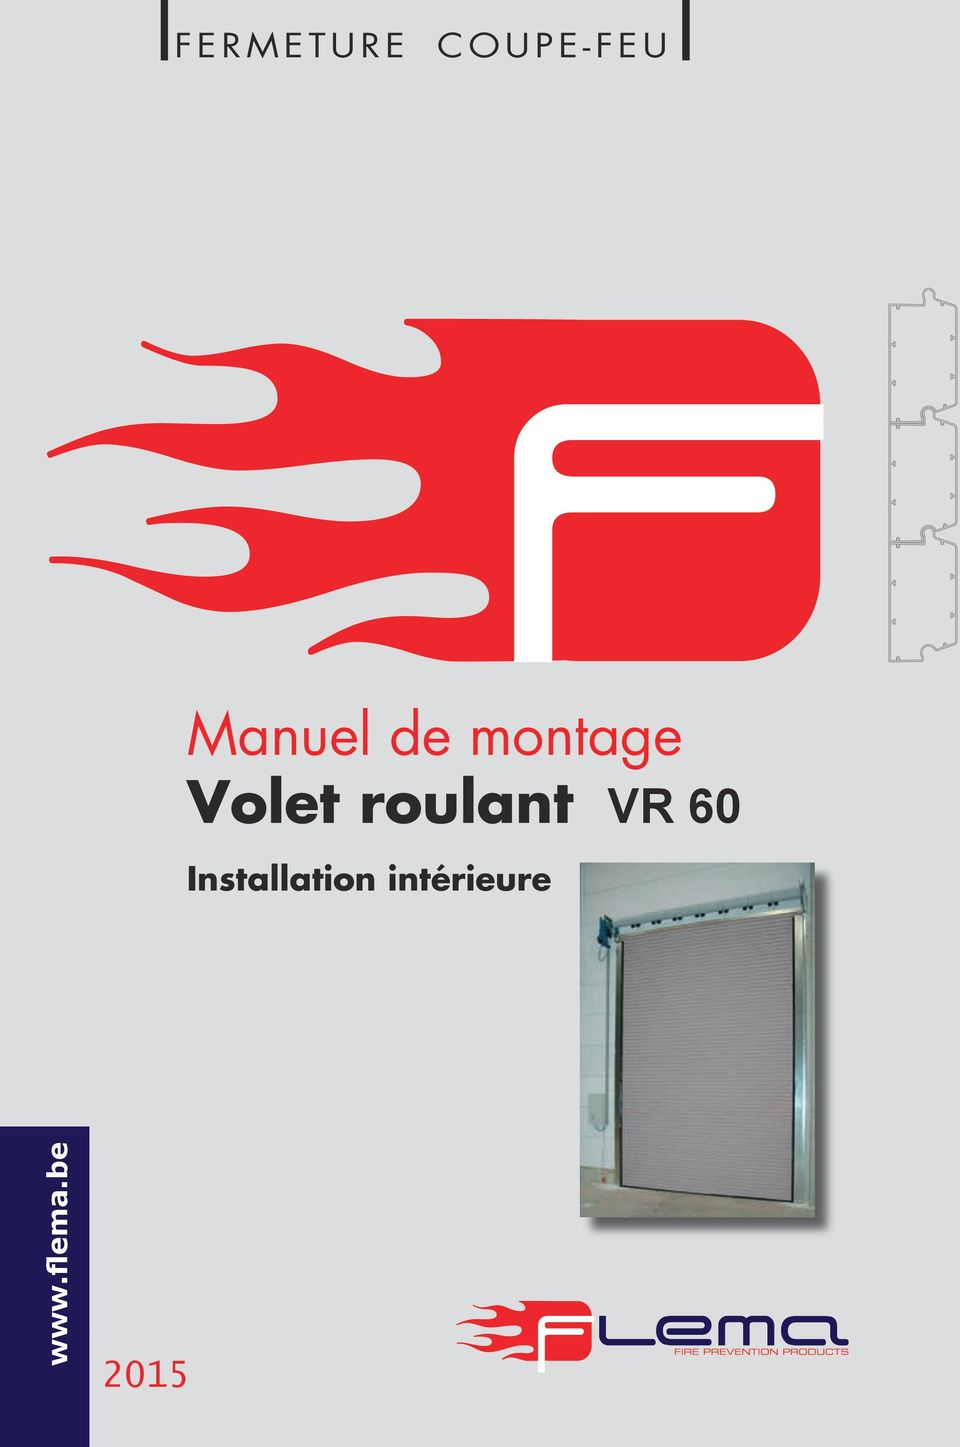 Volet roulant VR 60